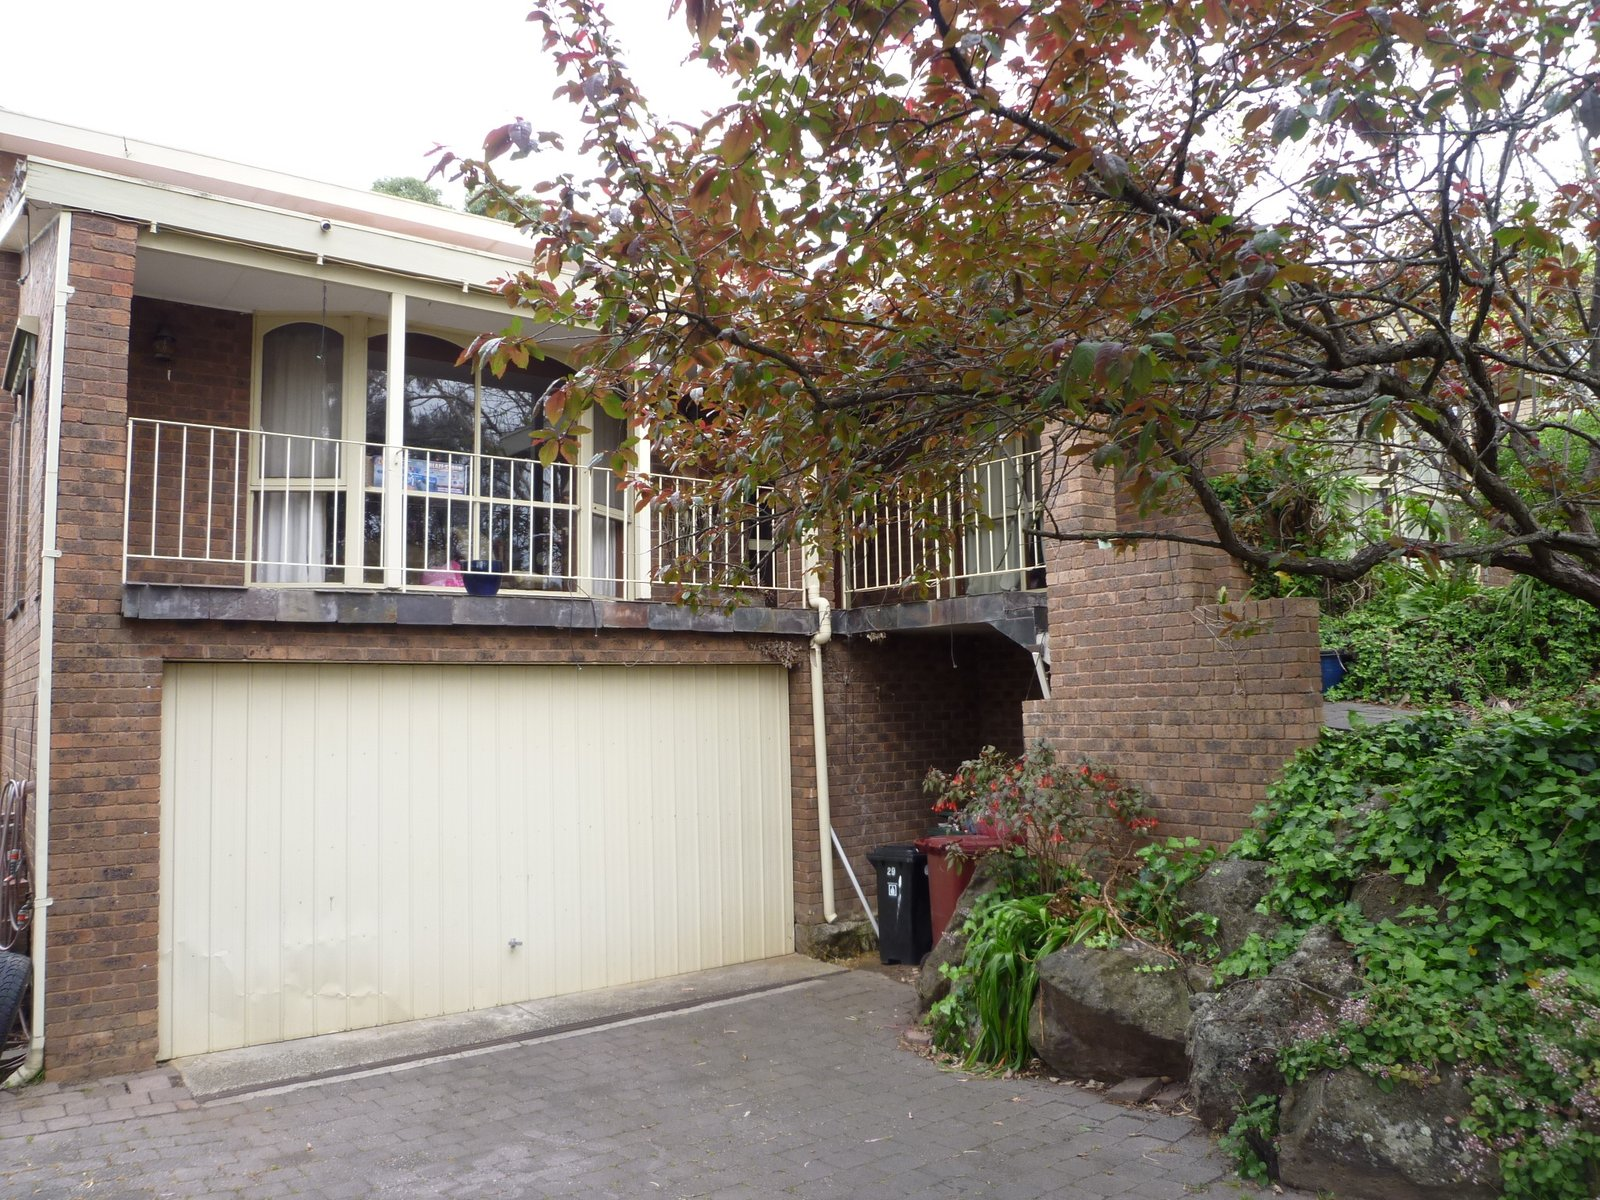 Photo 3 of 17 in A Remodel Turns a Dark and Choppy House in Melbourne Into a Bright, Flexible Family Home